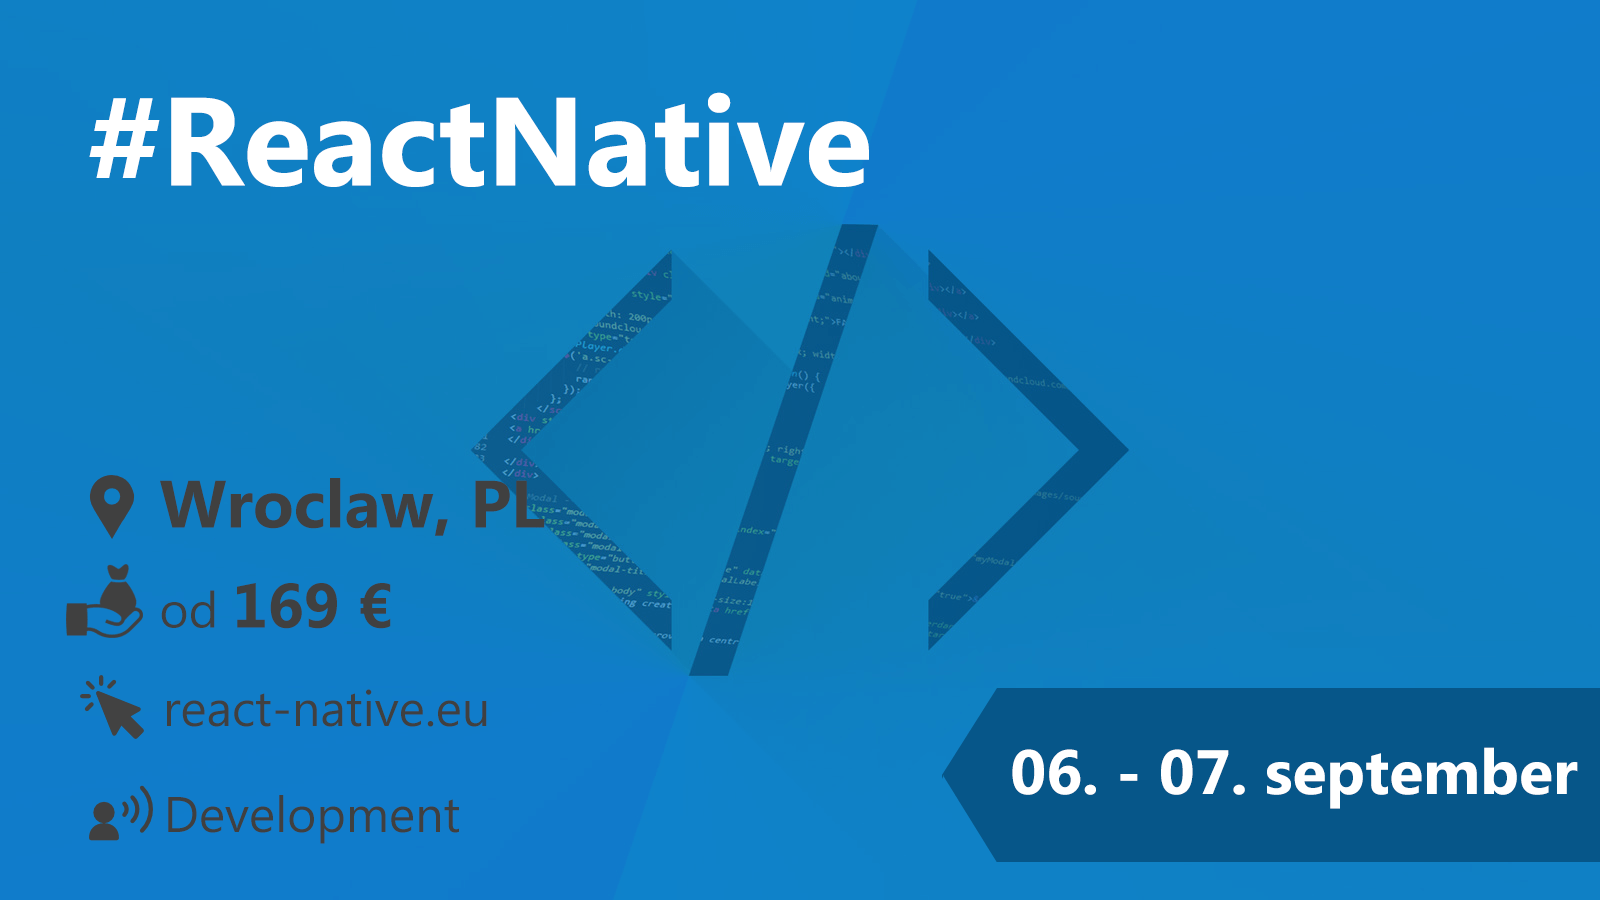 #ReactNative 06.-07. 9